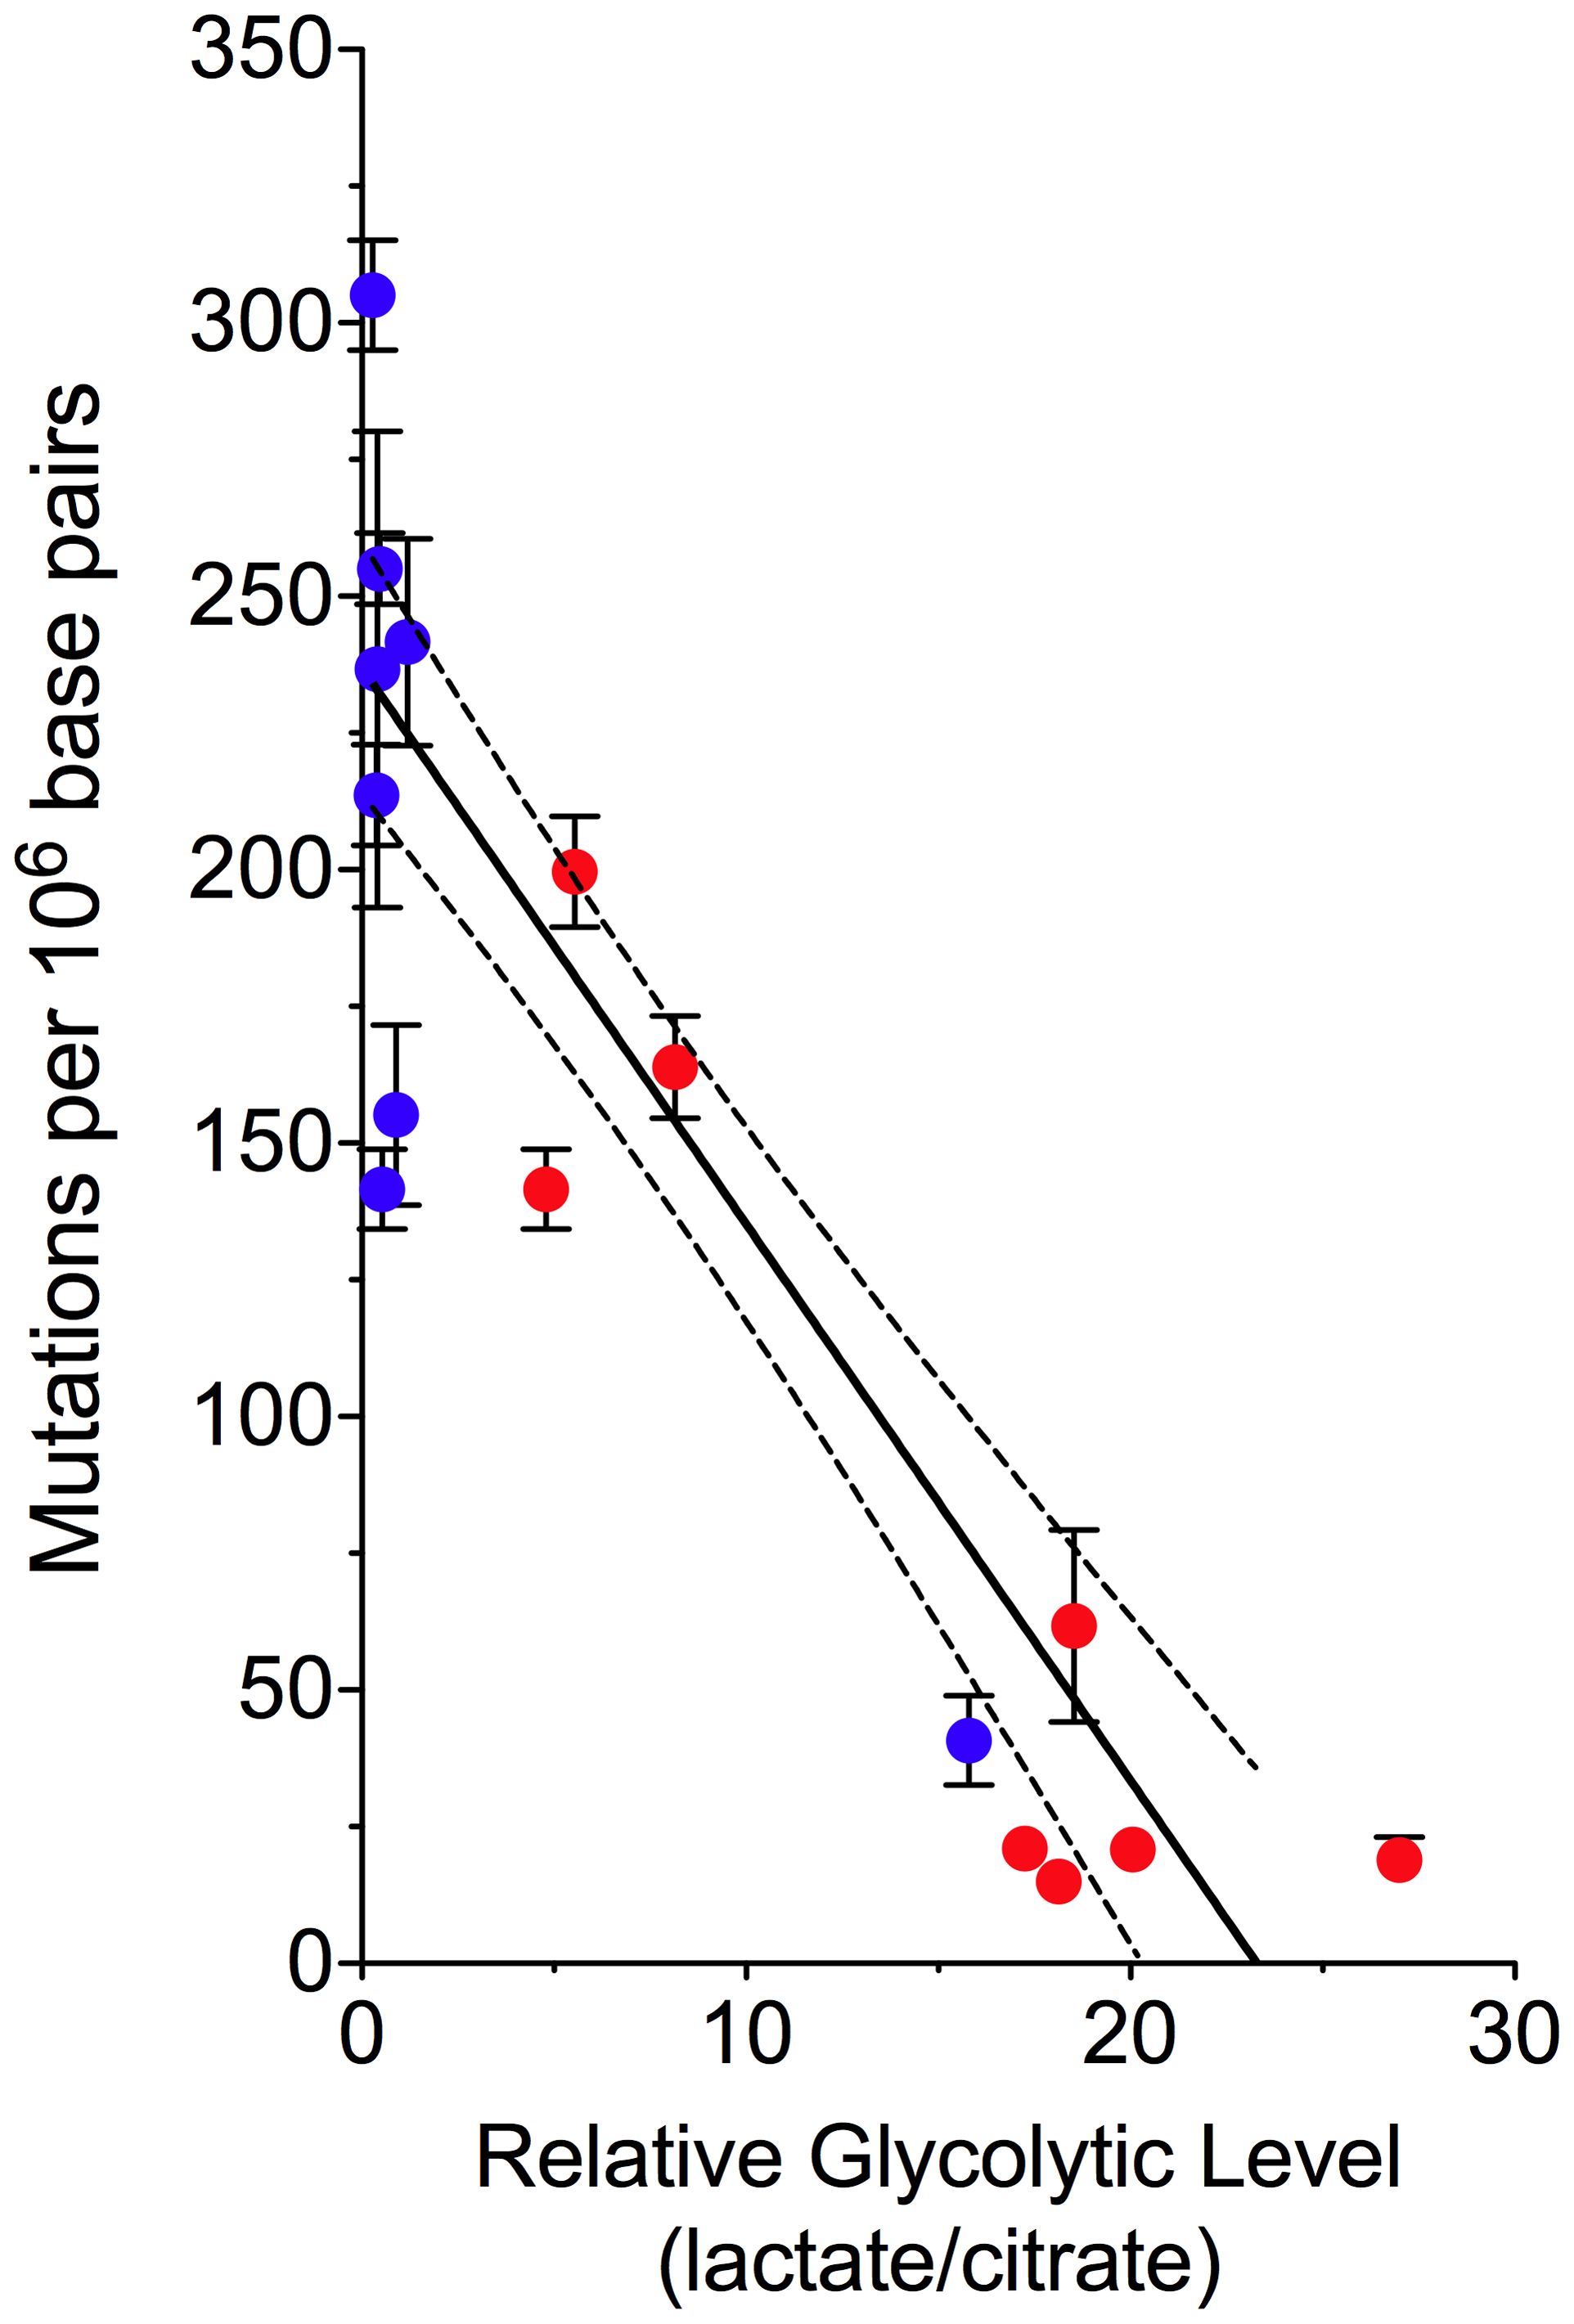 Decreased mtDNA Mutagenesis Is Coupled to a Shift in Glucose Metabolism.